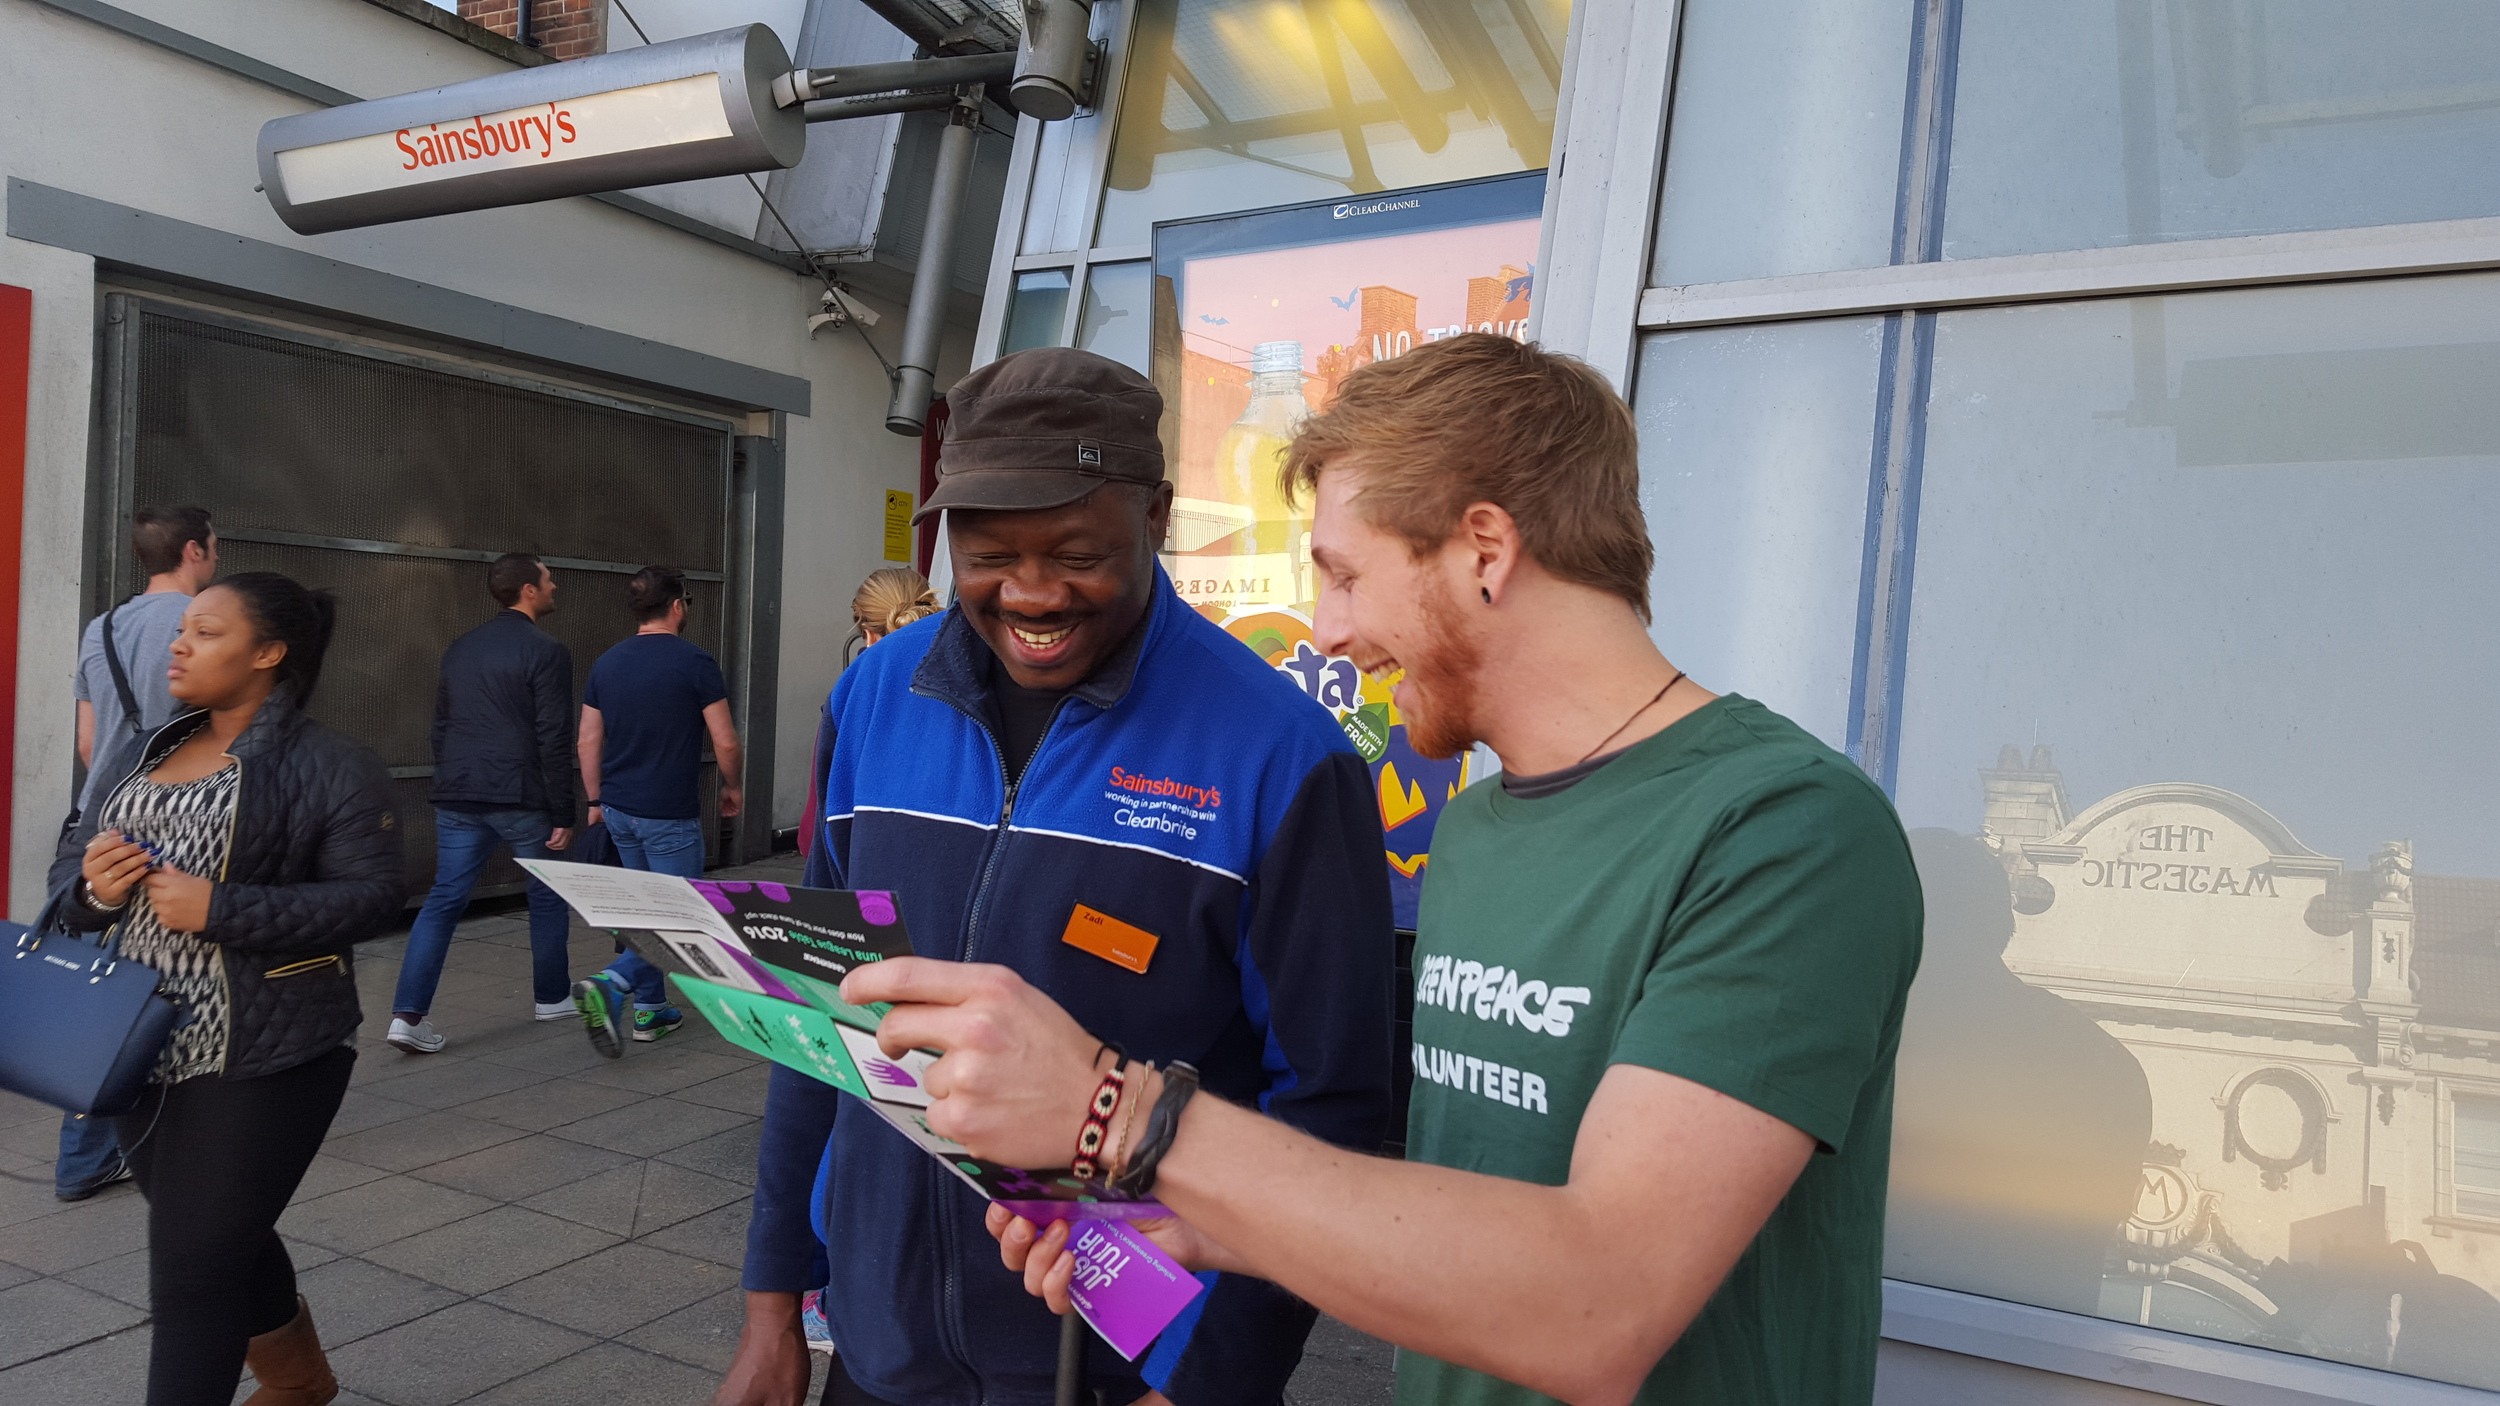 Greenpeace volunteer speaking to a member of the public